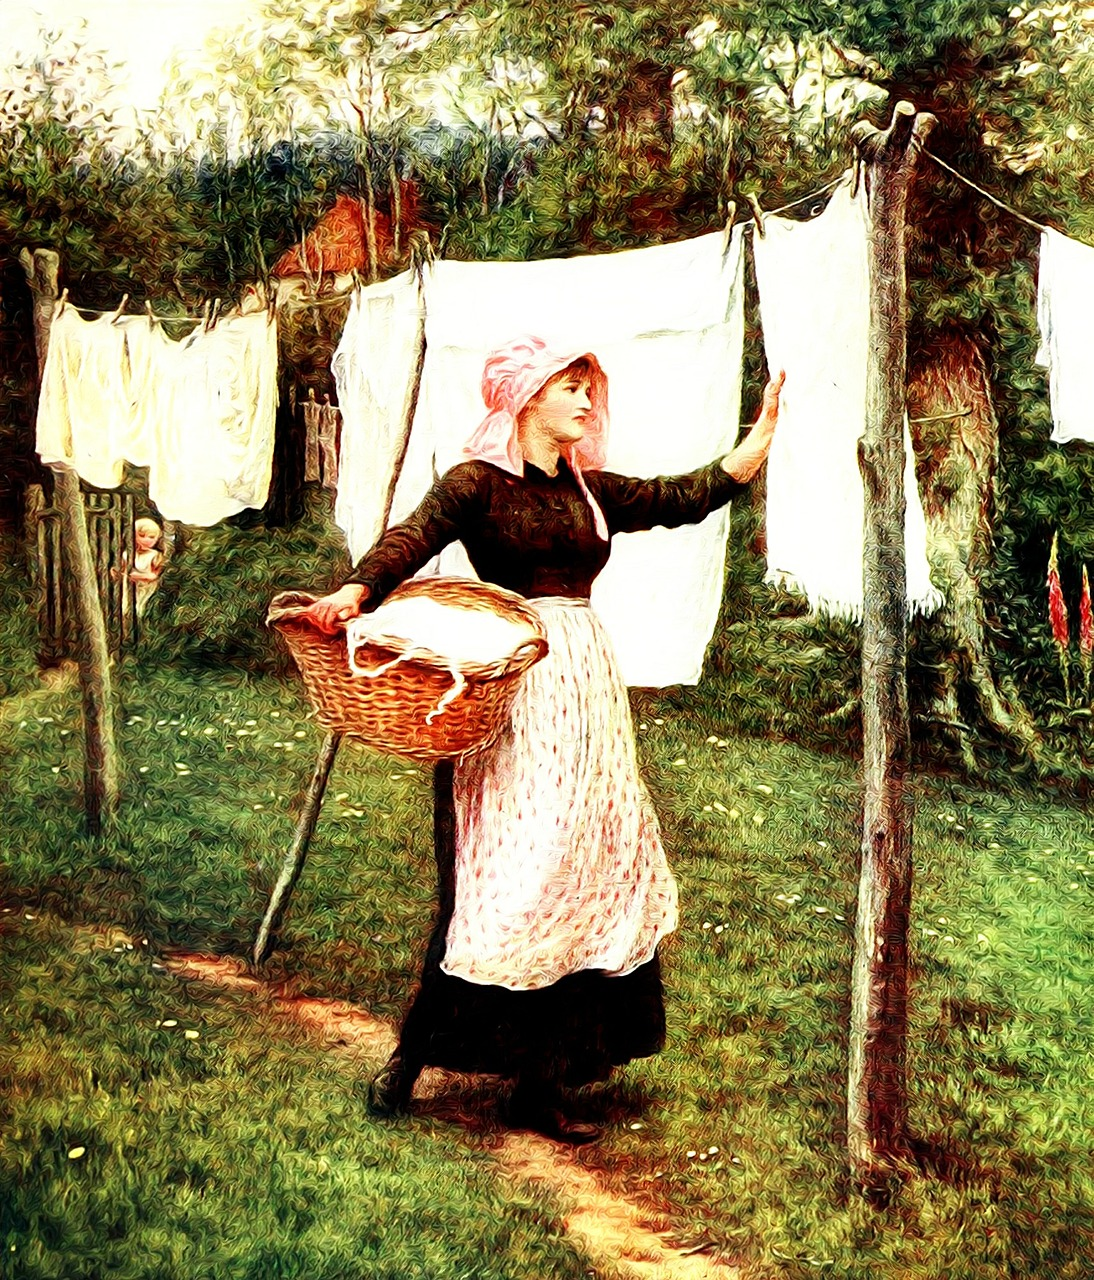 vintage-laundry-happy-vietnam-dalat-elliott-killian